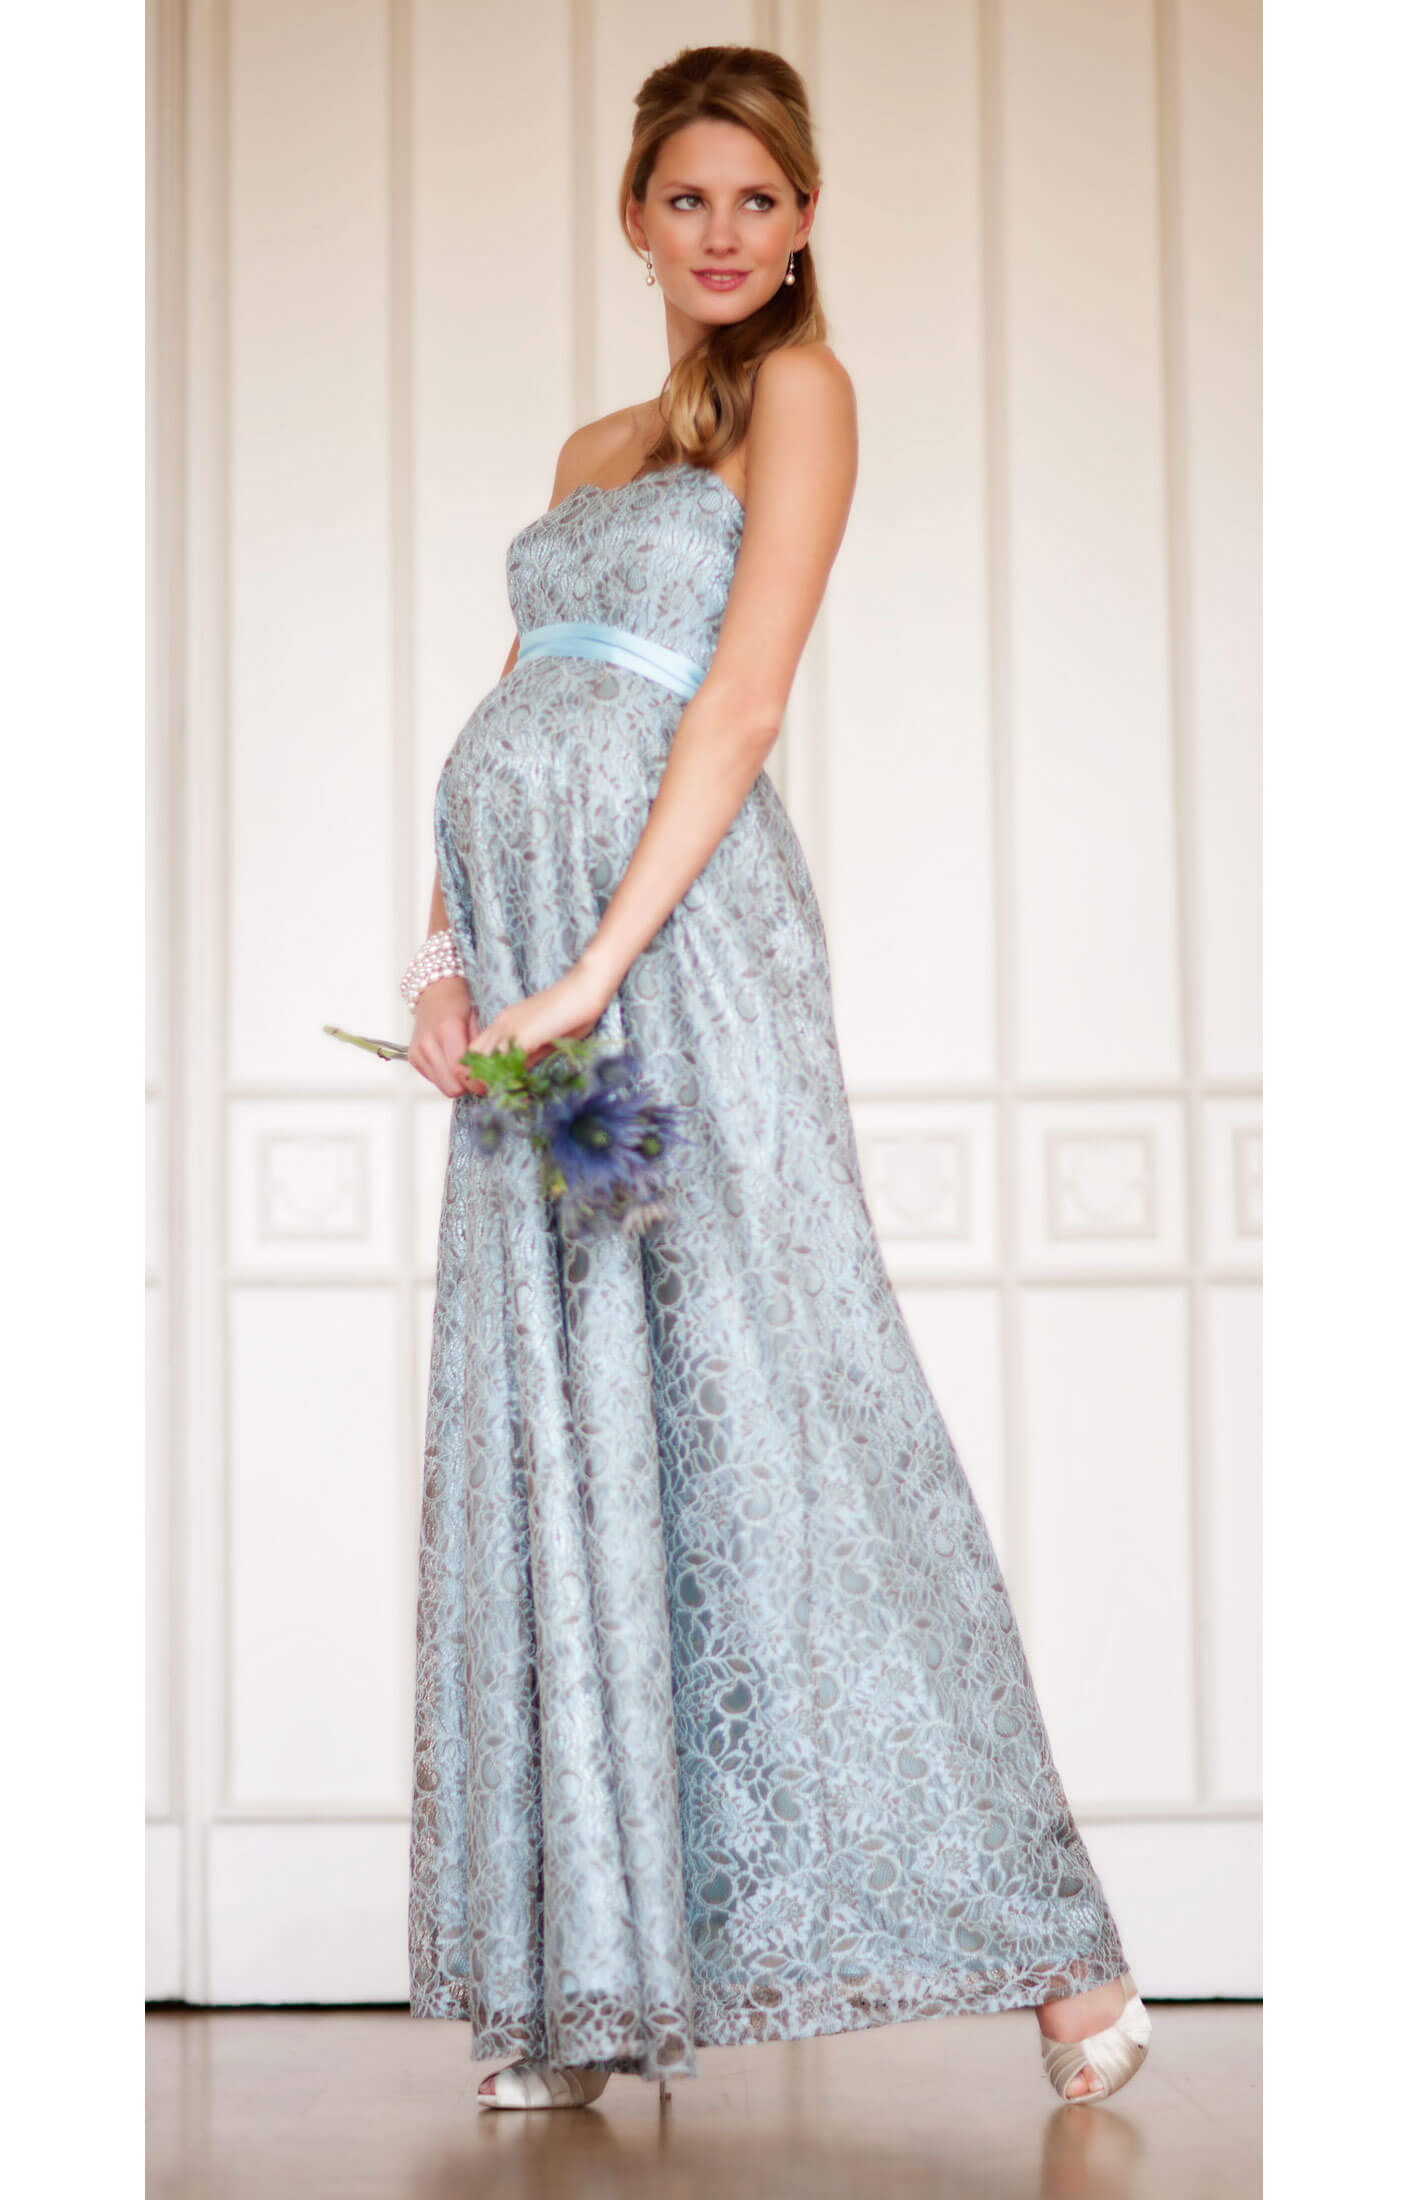 Savona Maternity Gown (Blue) - Maternity Wedding Dresses, Evening ...